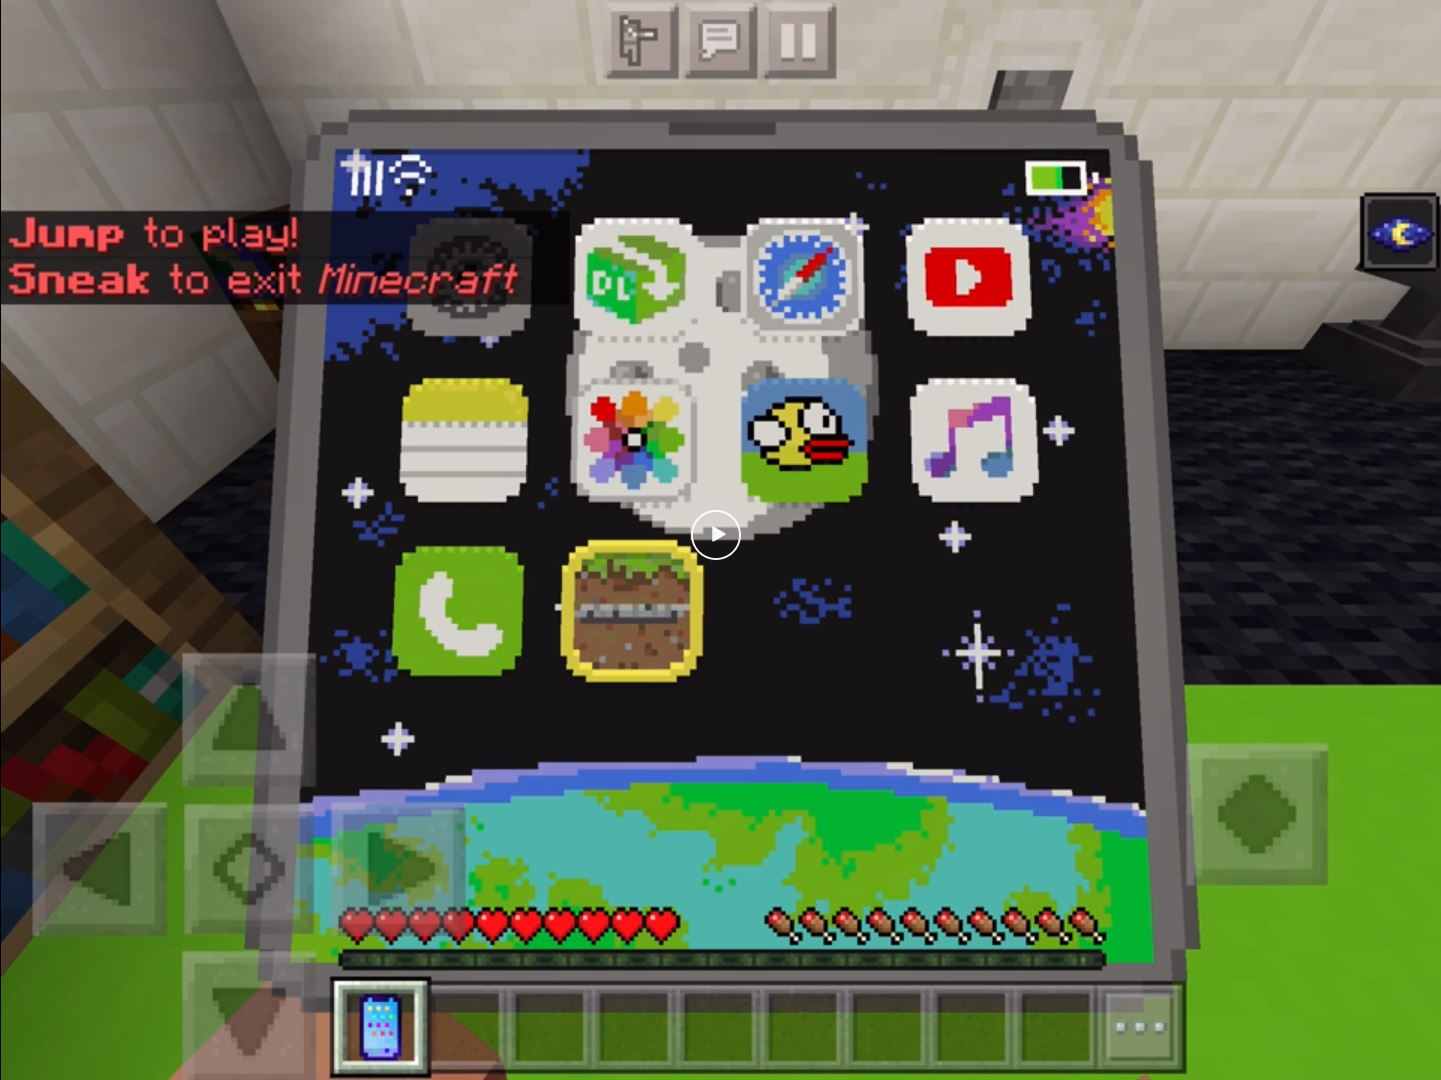 Minecraft Redditor On_Reddit_I_Gettit Has Created Minecraft In Minecraft On His Phone!